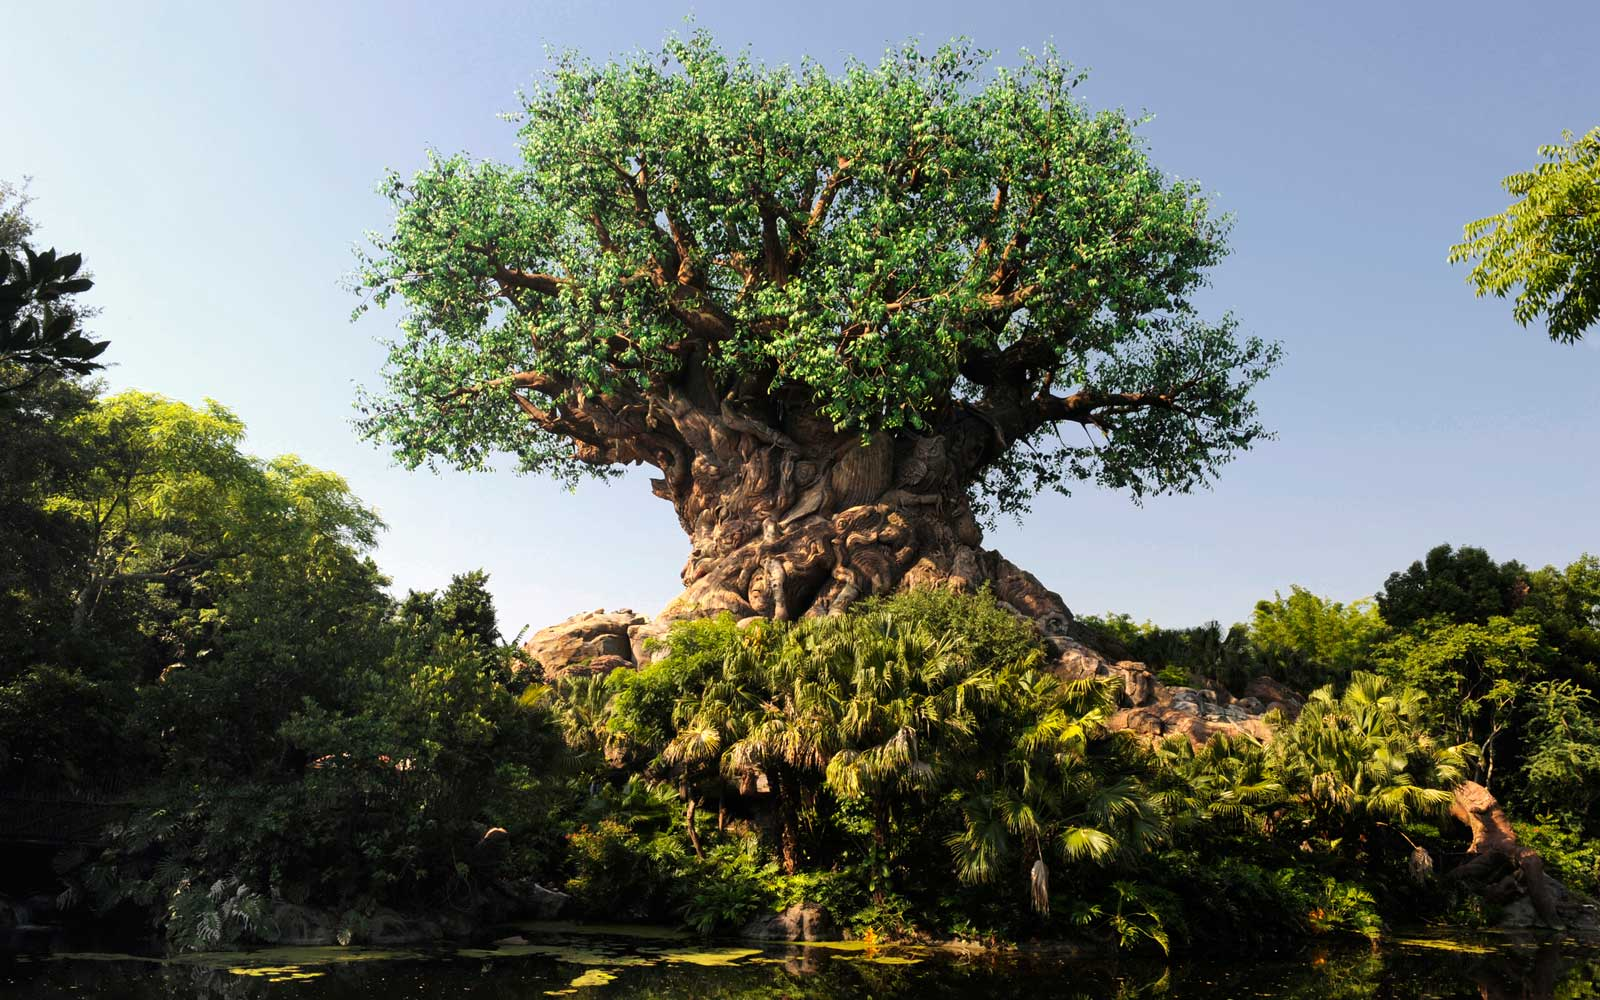 Disney's Animal Kingdom in Orlando, Florida